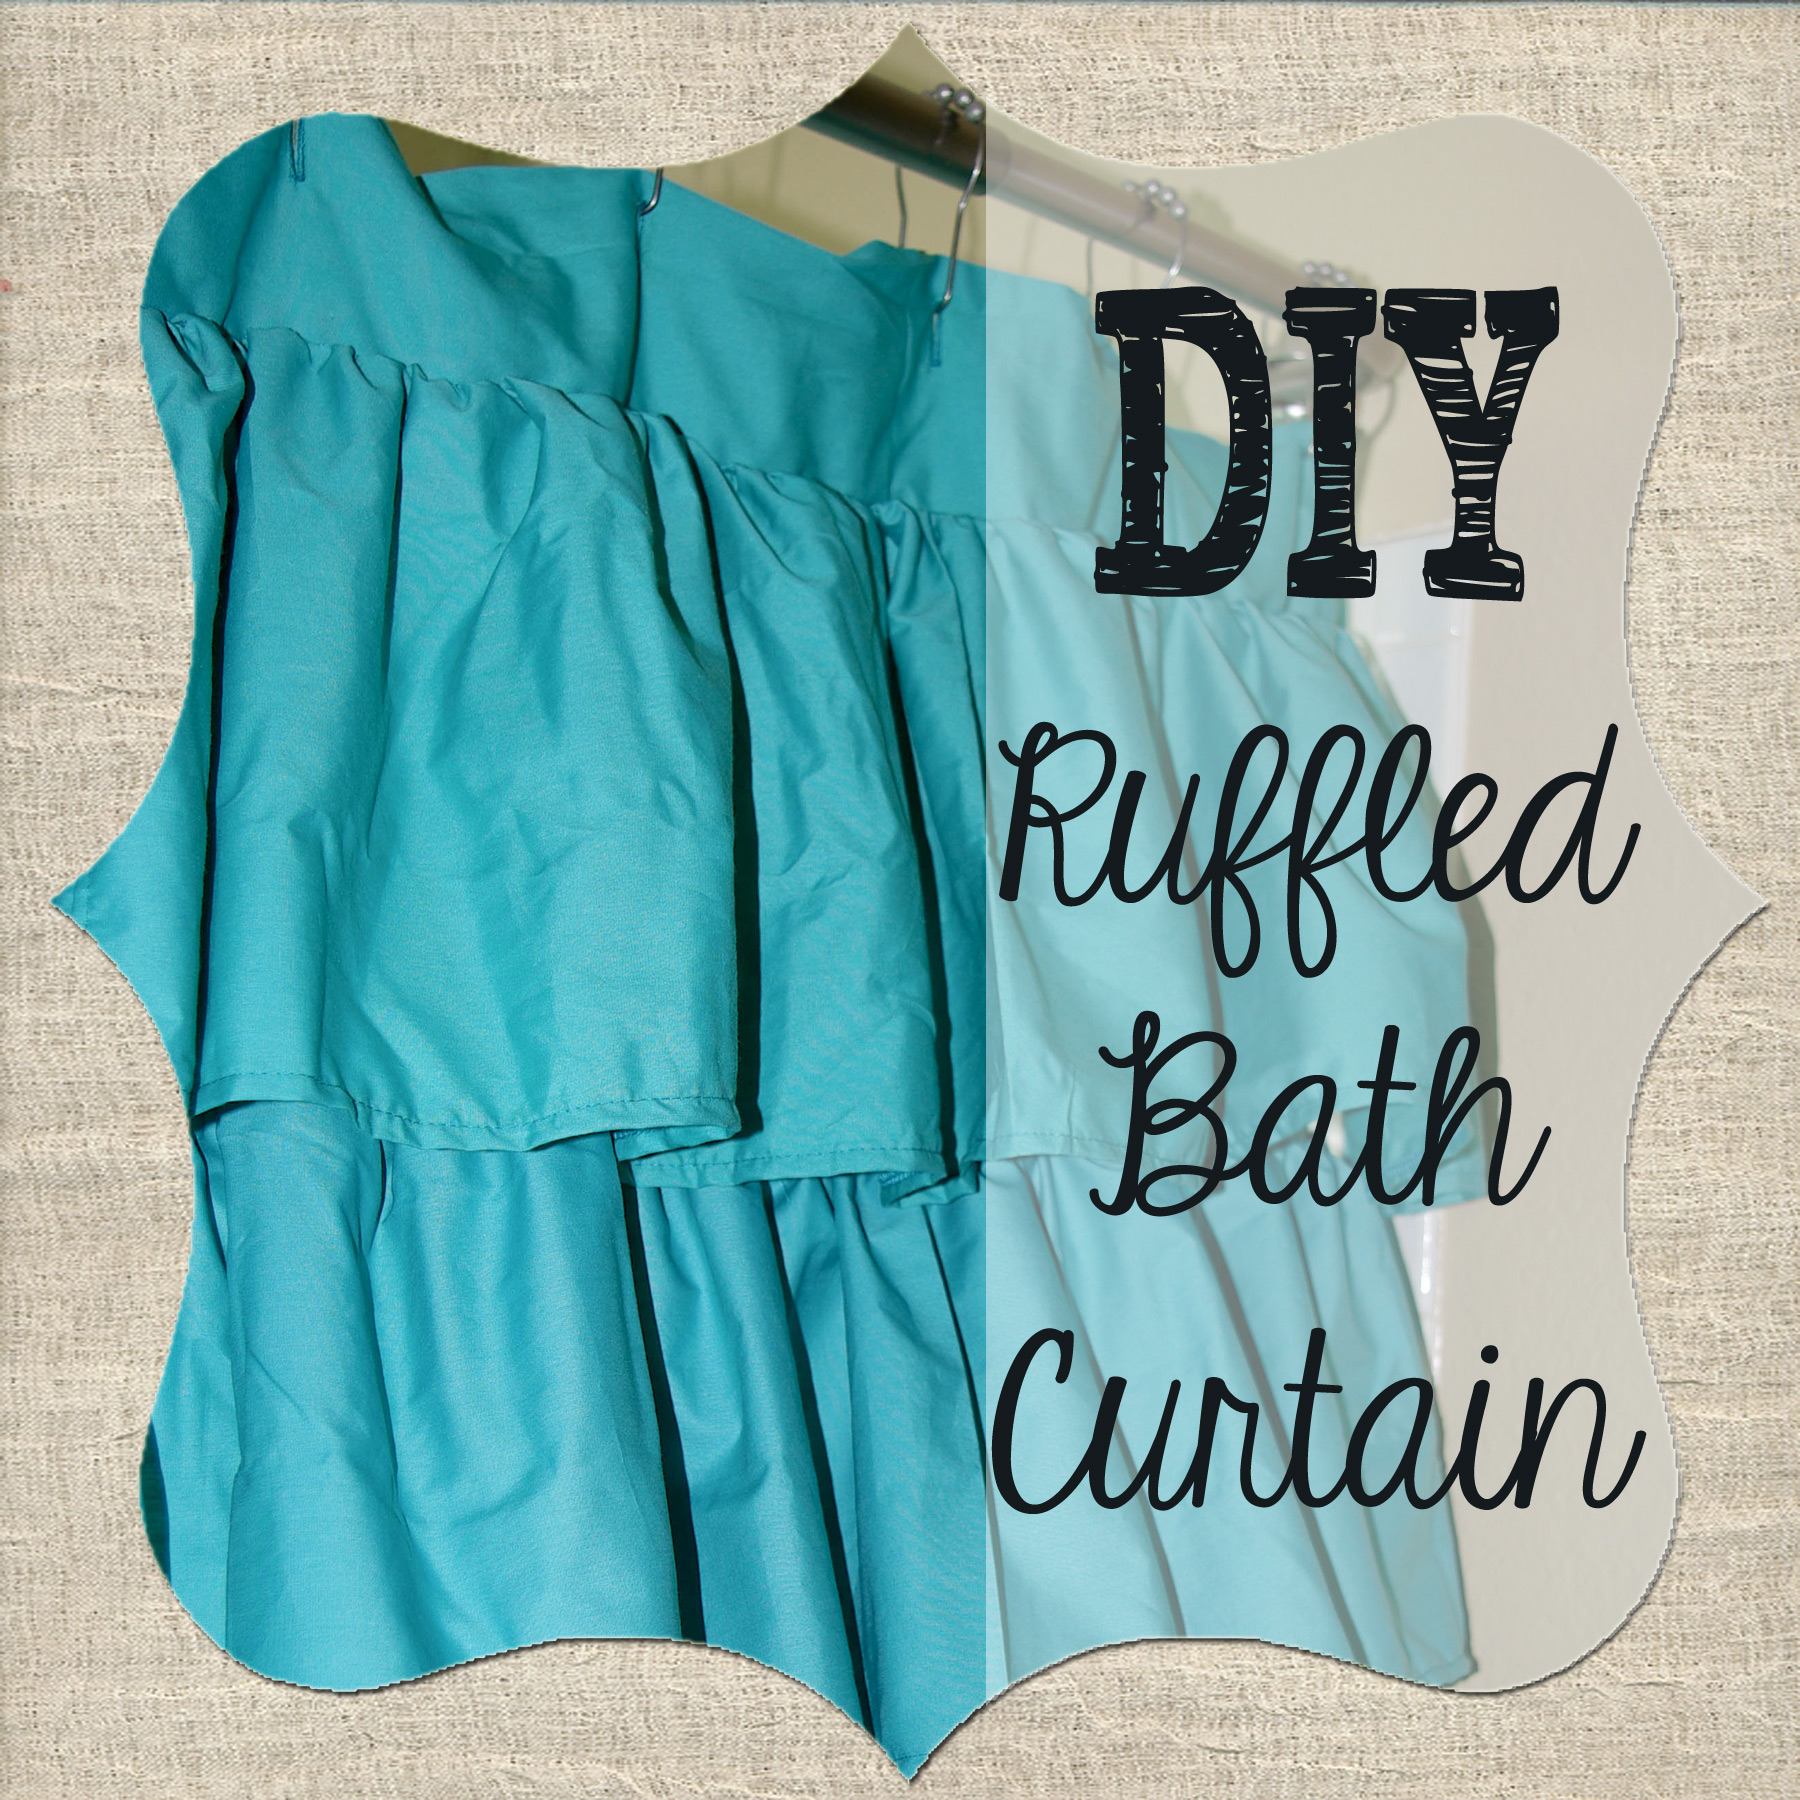 Diy ruffled shower curtain - As The Kids Bathroom Is Slowly Going Through Its Transformation It No Longer Matched The Current Bath Curtain A Few Weeks Ago I Saw A Very Cute Ruffled